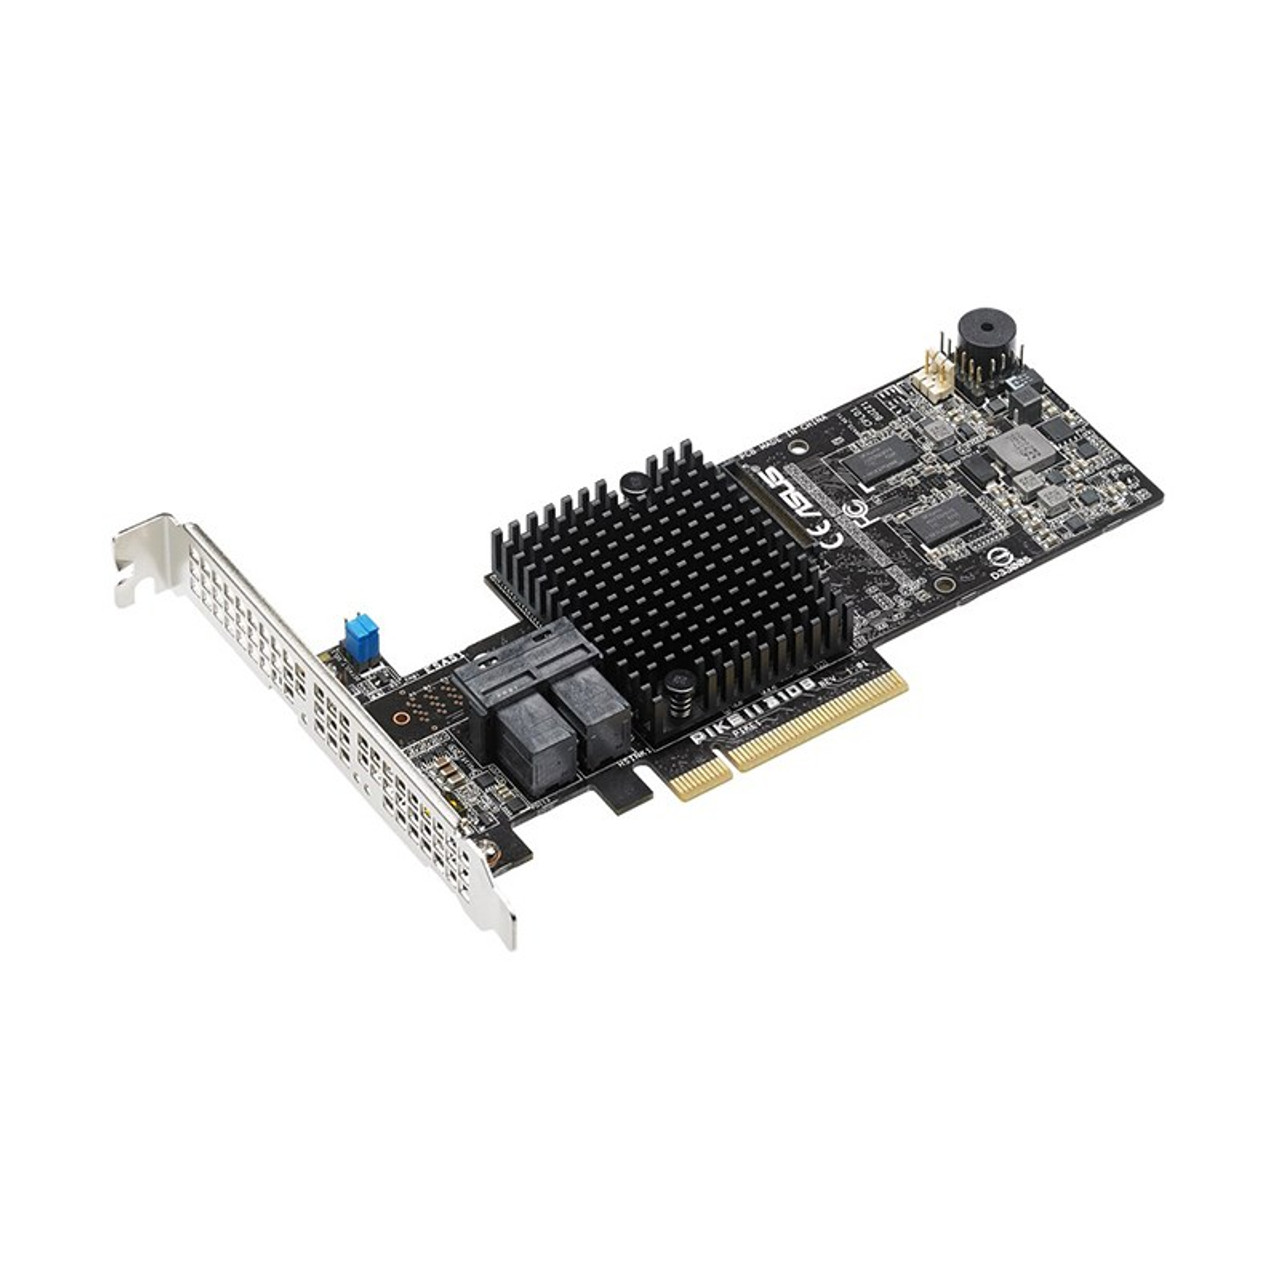 Image for Asus PIKE II 3108-8i/16PD/2G 8-Port SAS 12Gbps RAID Card Controller CX Computer Superstore